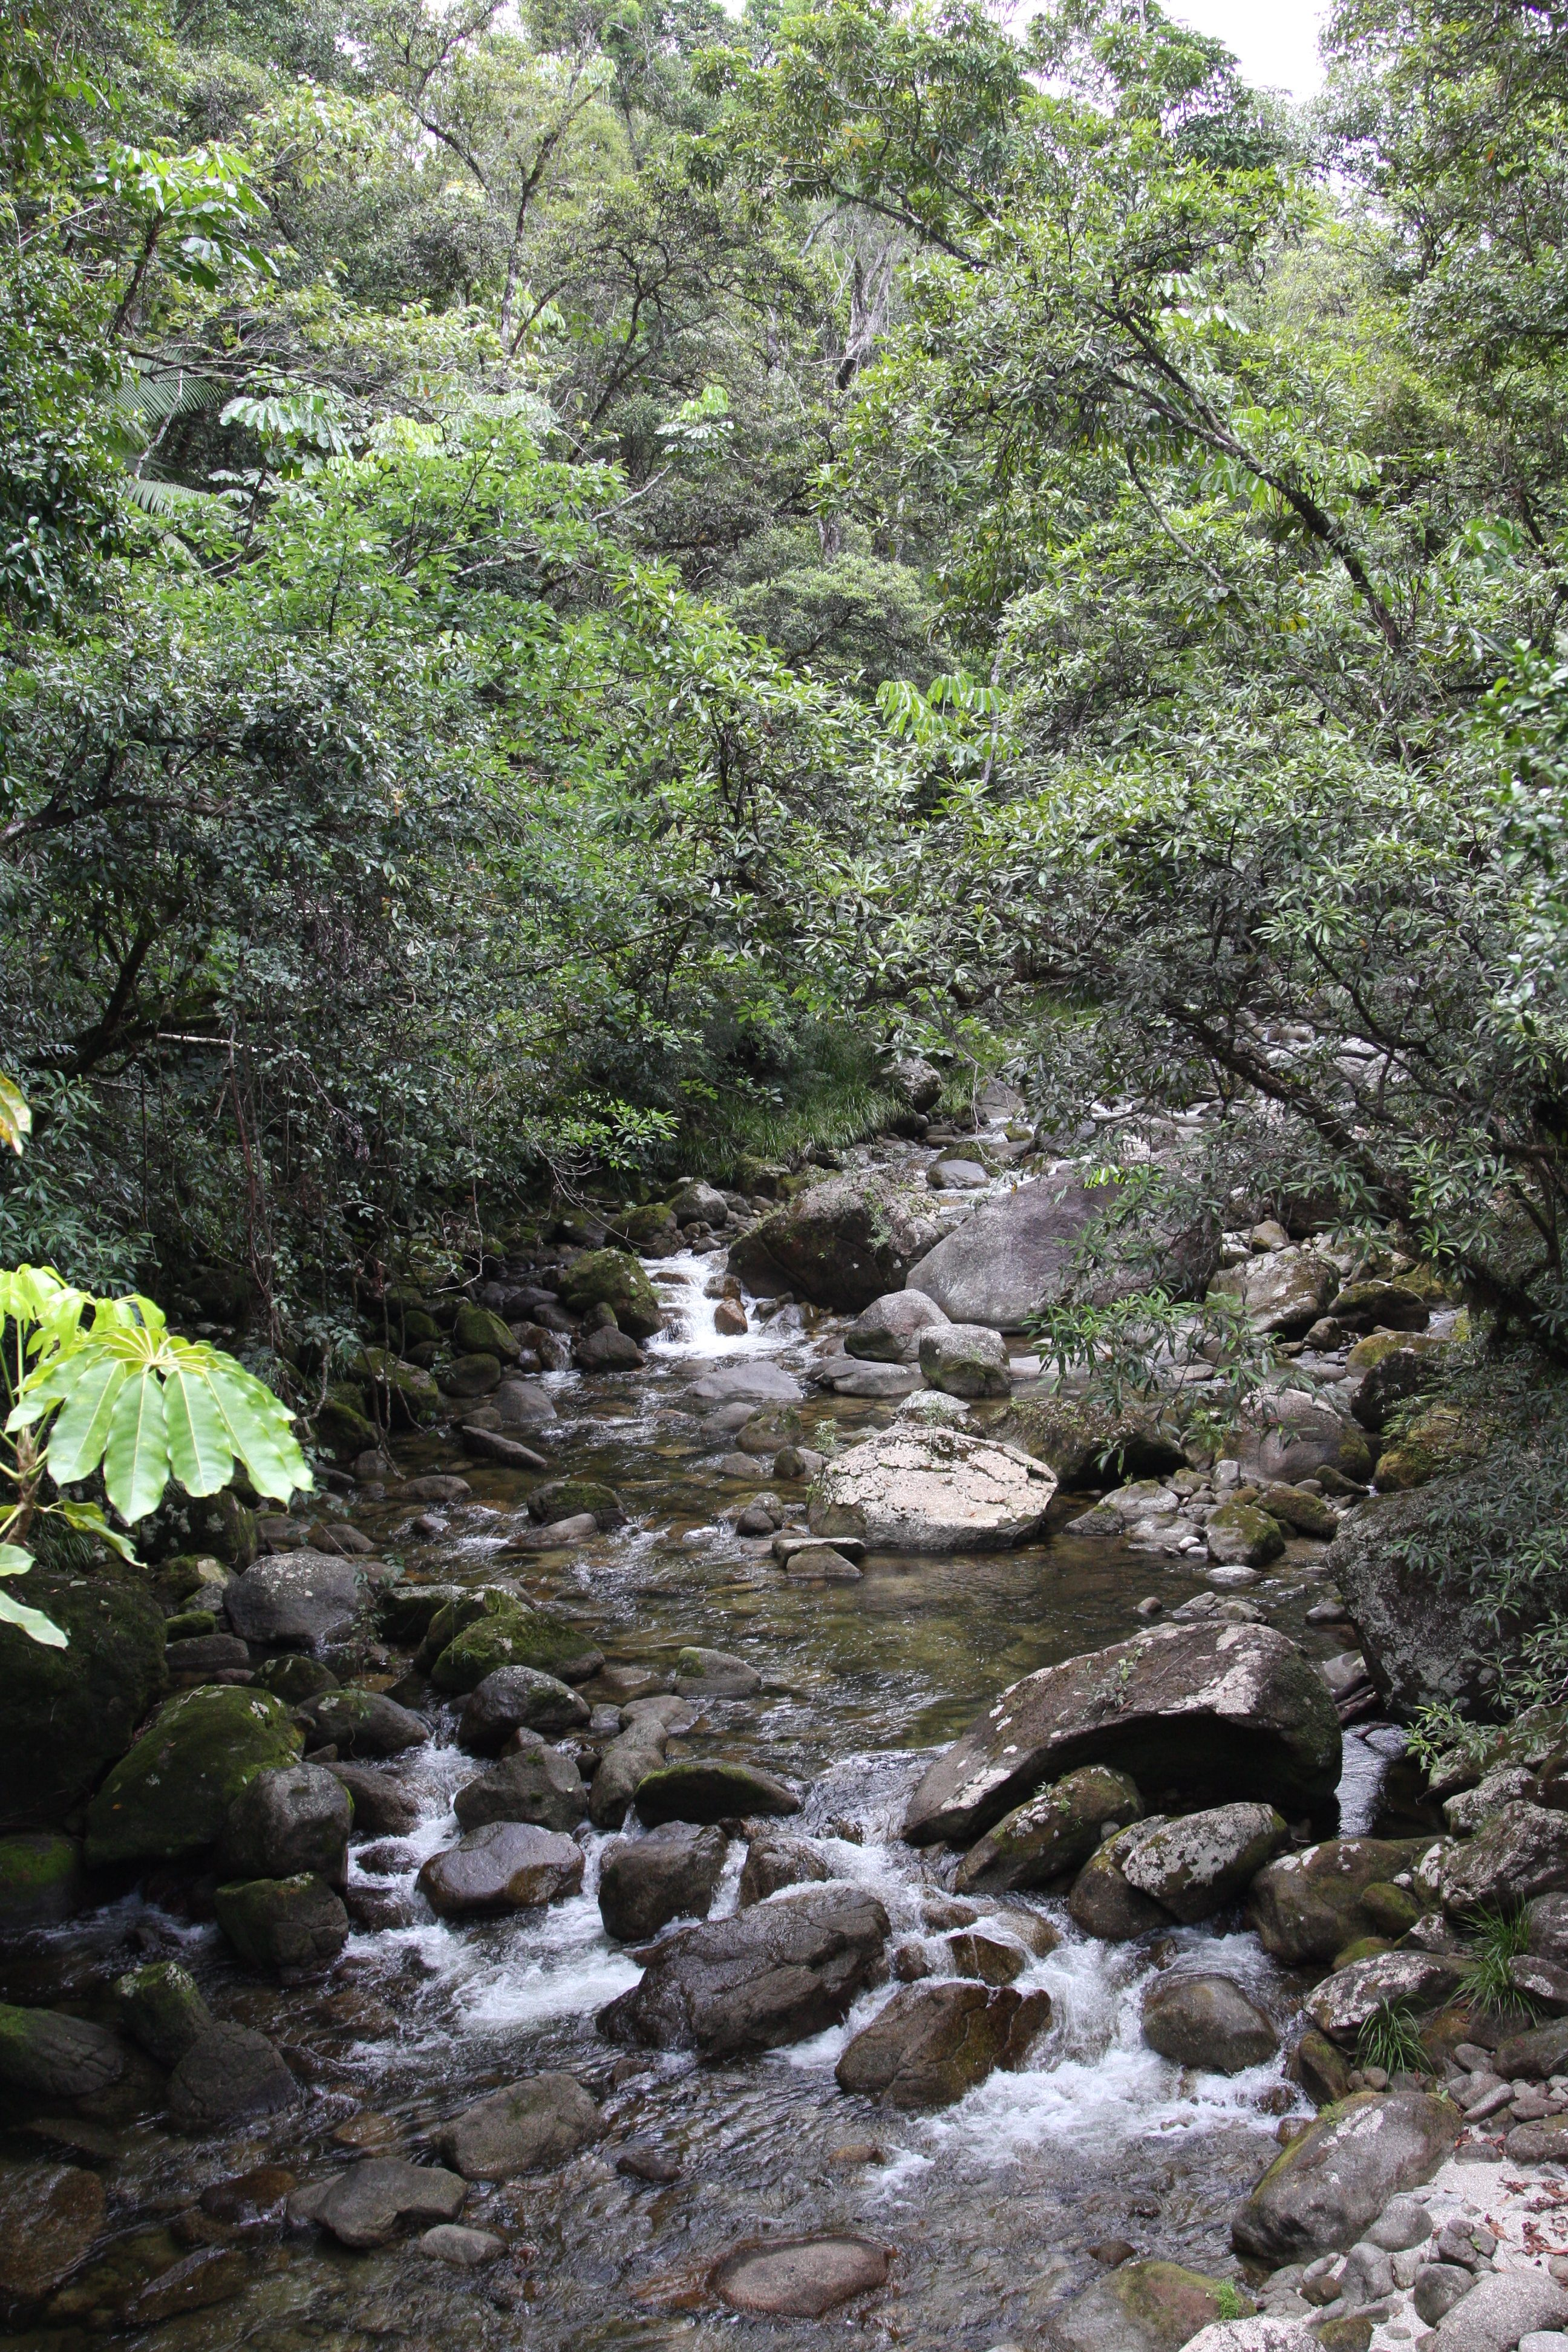 flowing water over rocks surrounded by trees in the Mossman Gorge